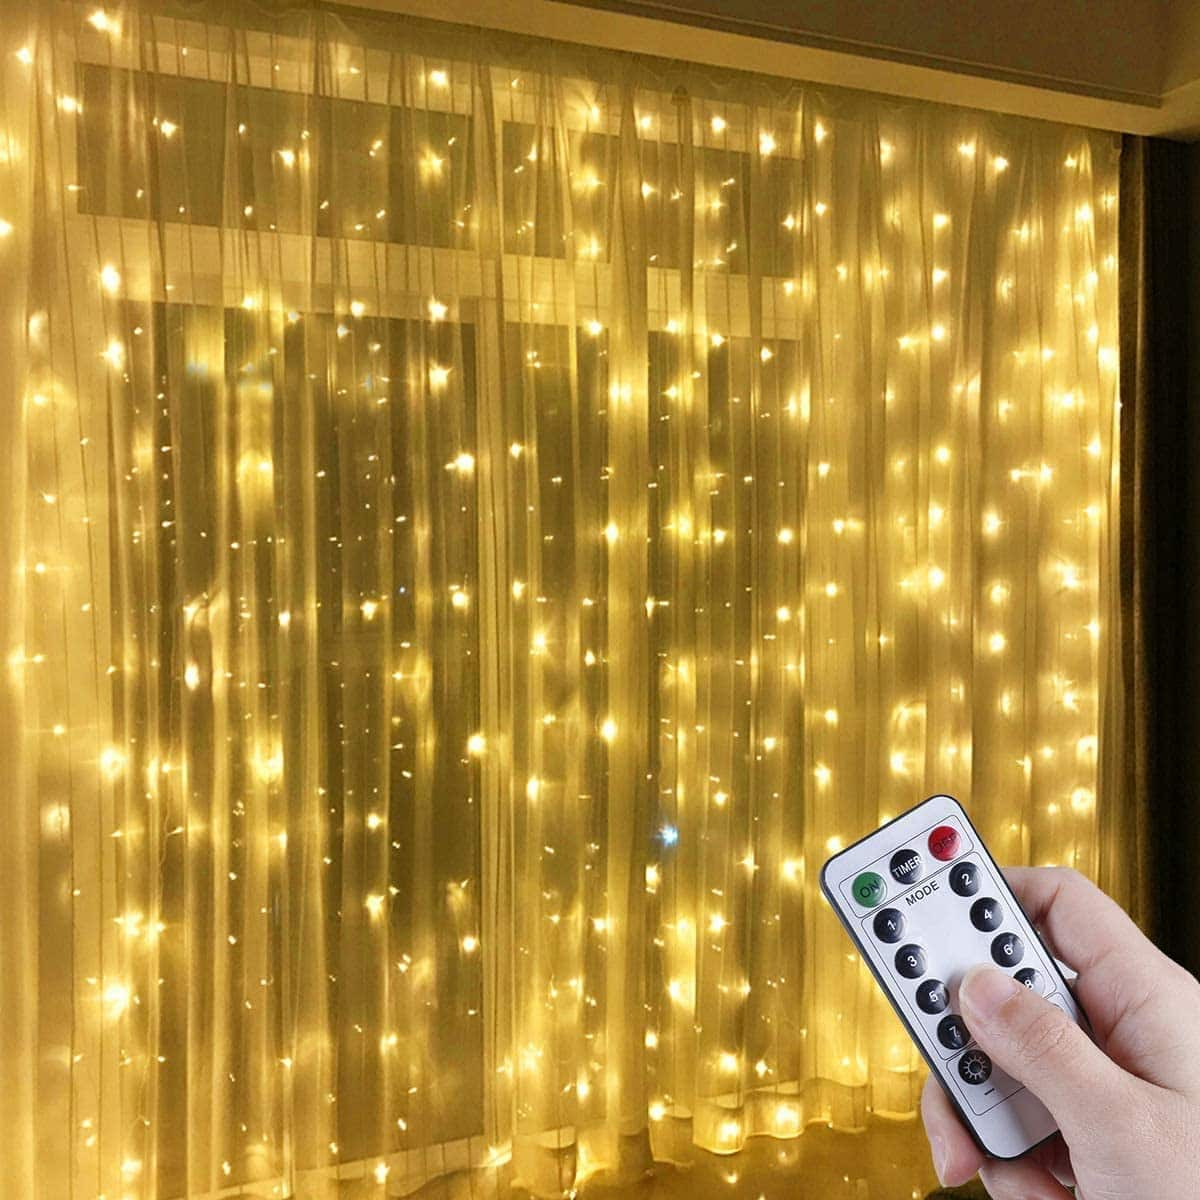 LED Window Curtain String Light, 300 LED Warm White Window Fairy String Lights with 8 Modes $10.19+Fs